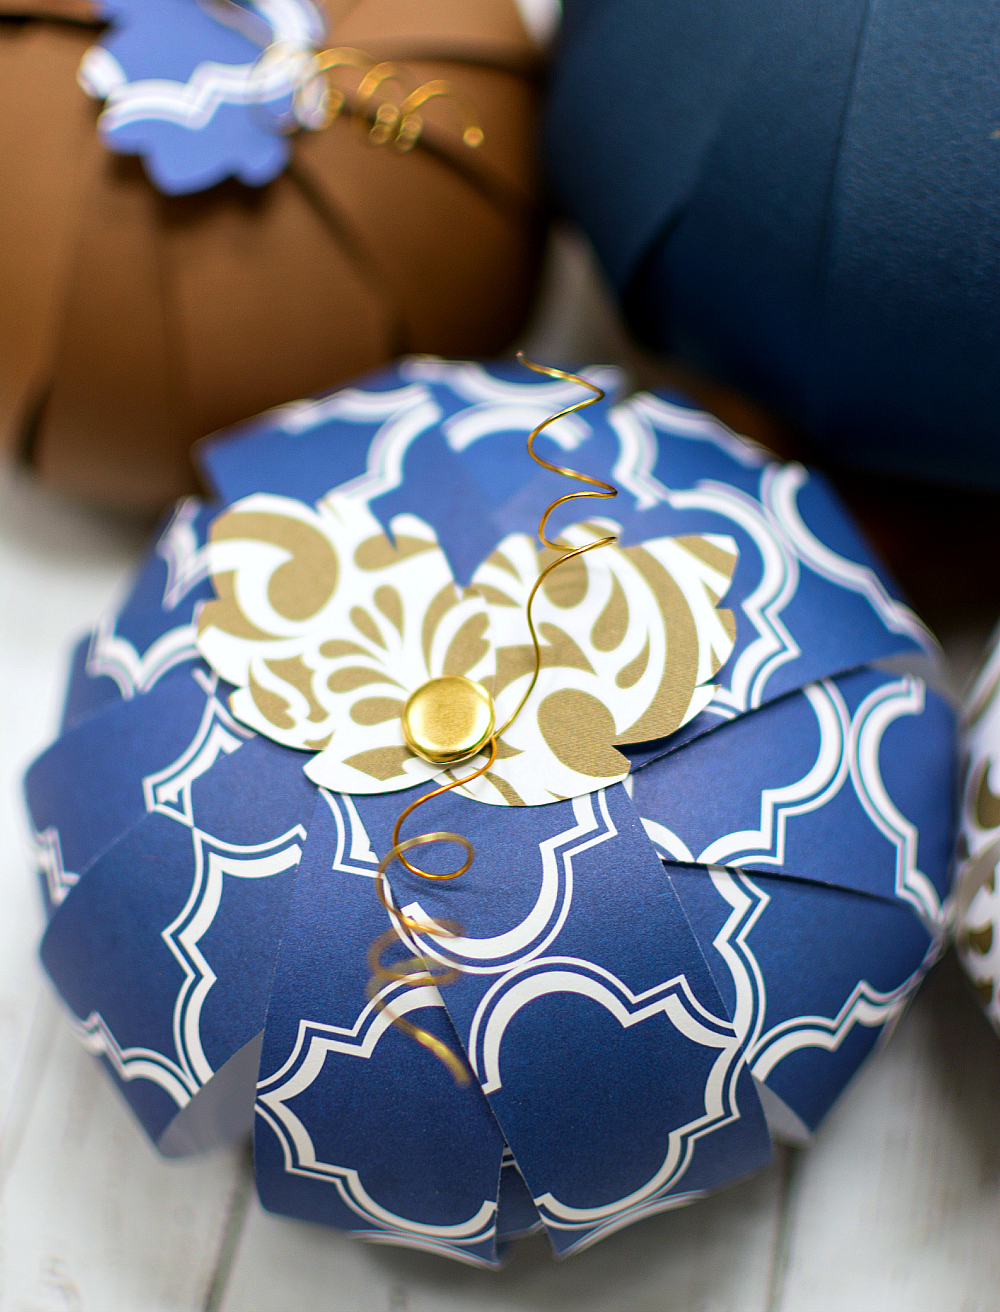 Halloween Craft Ideas with Paper: Paper Pumpkins